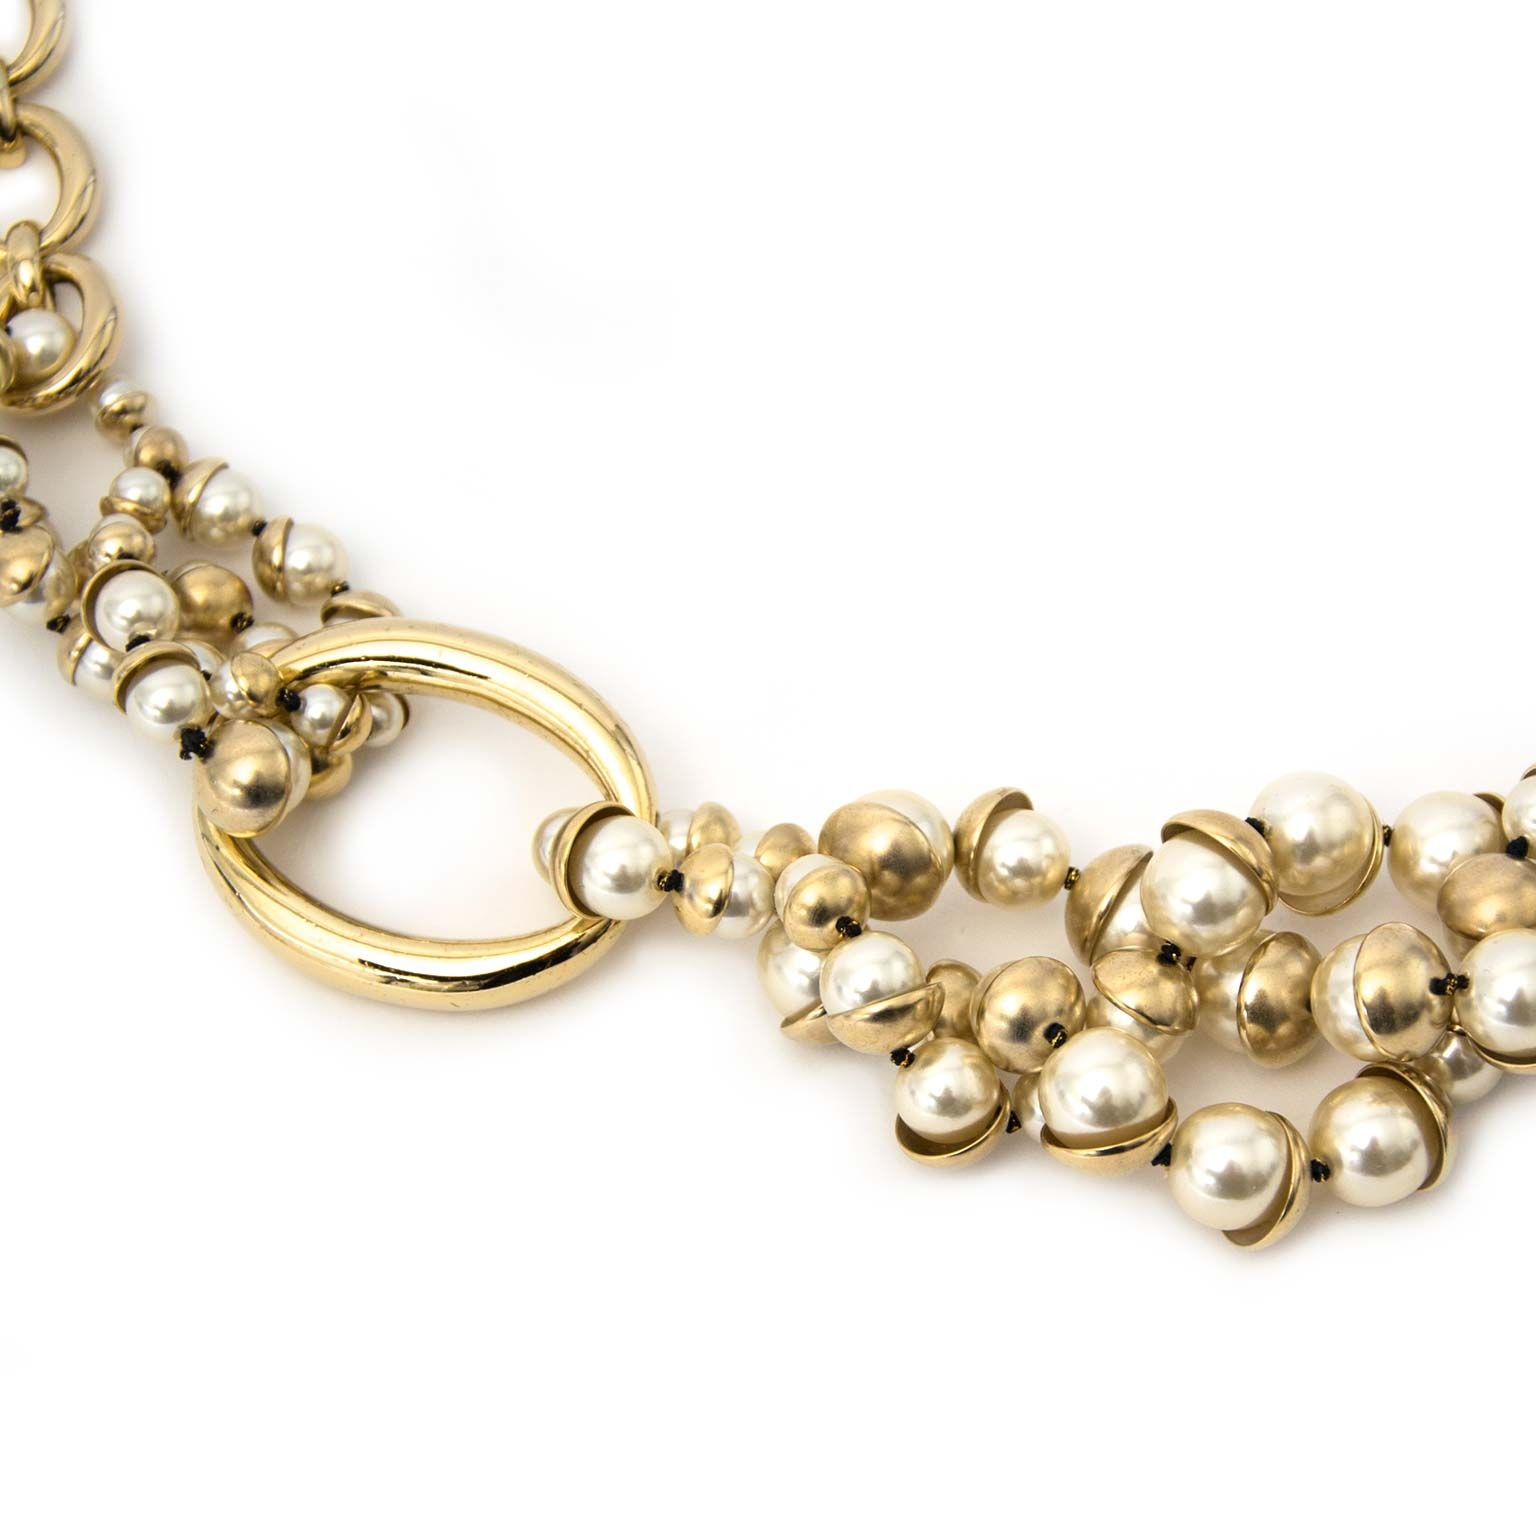 Dior 'Mise en Dior' Pearl Necklace Buy authentic designer Dior secondhand jewellery jewelry at Labellov at the best price. Safe and secure shopping. Koop tweedehands authentieke Dior Juwelen halsketting designer webwinkel labellov